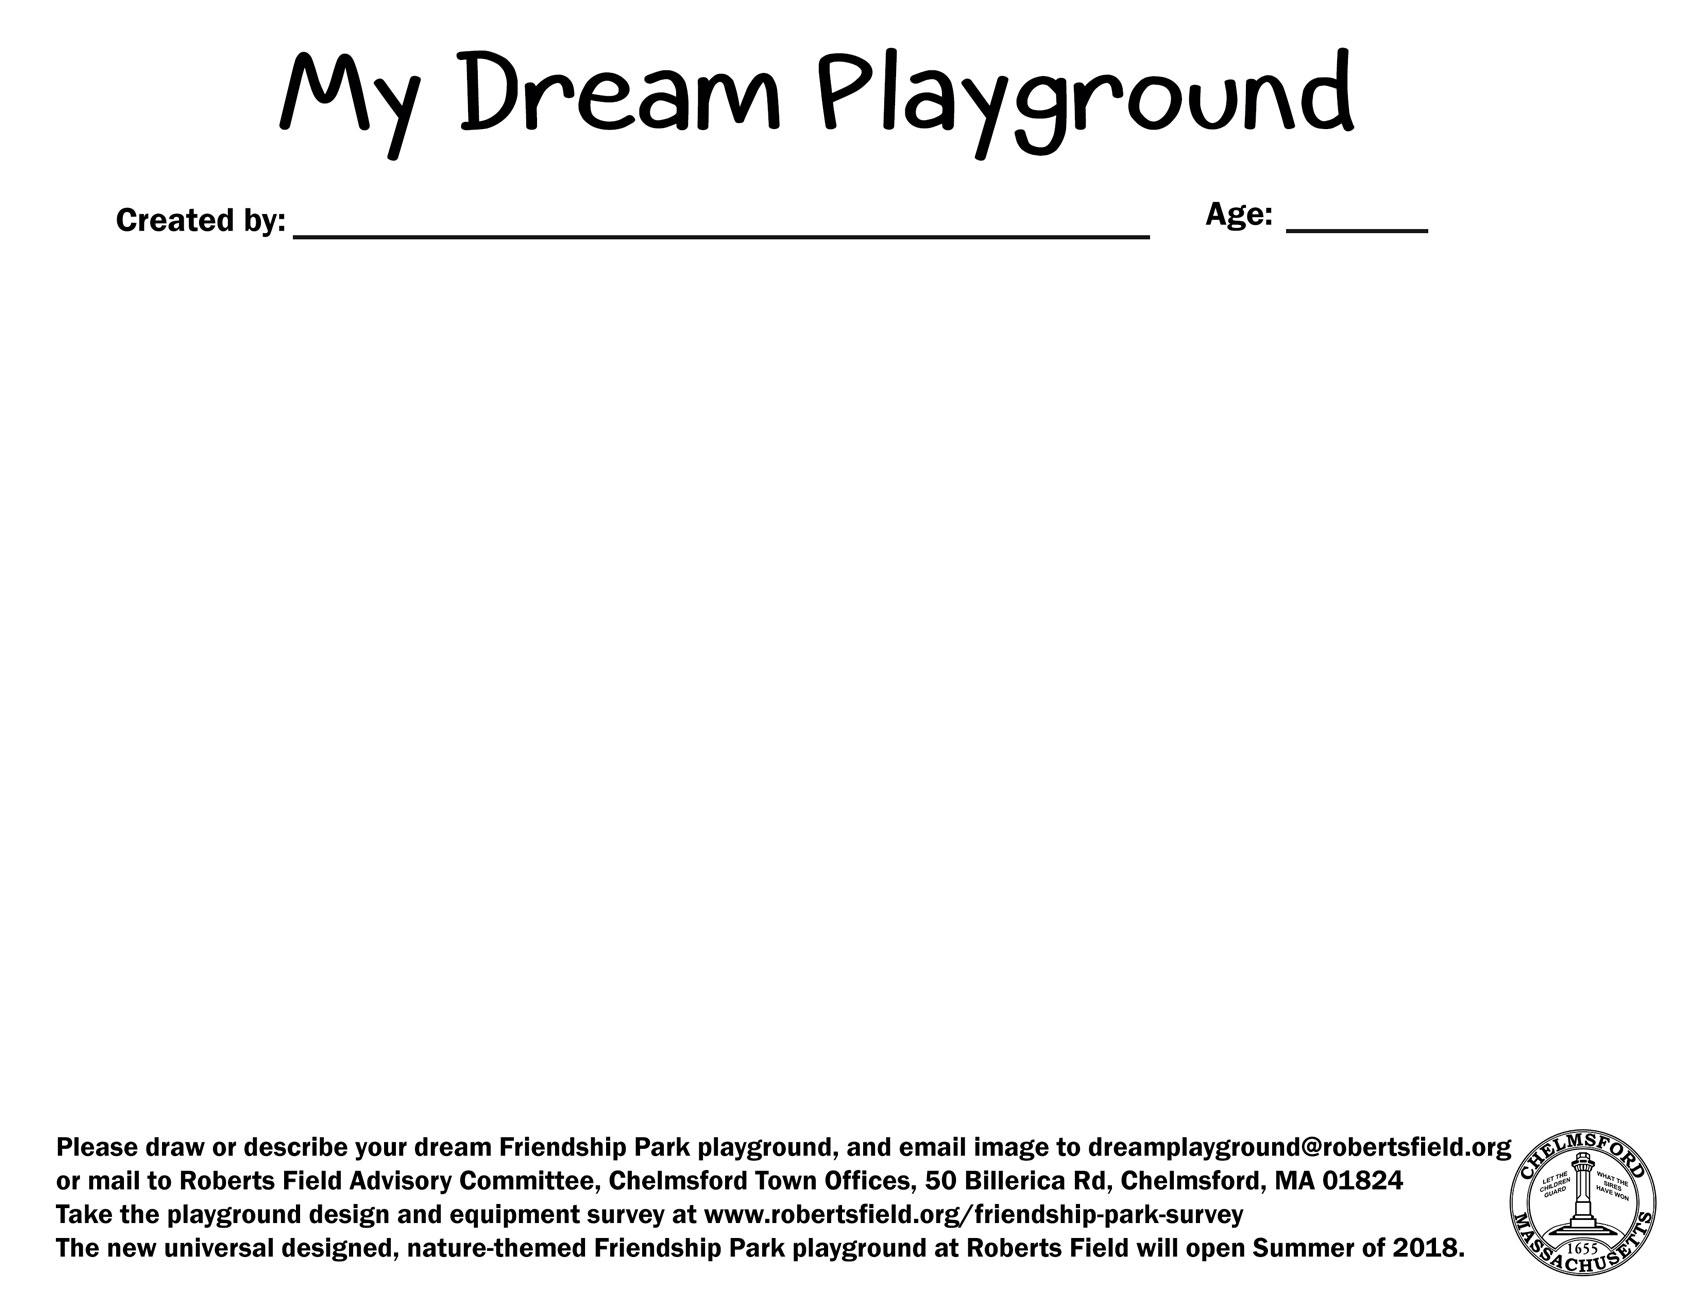 My Dream Playground Worksheet – Roberts Field in Chelmsford, MA